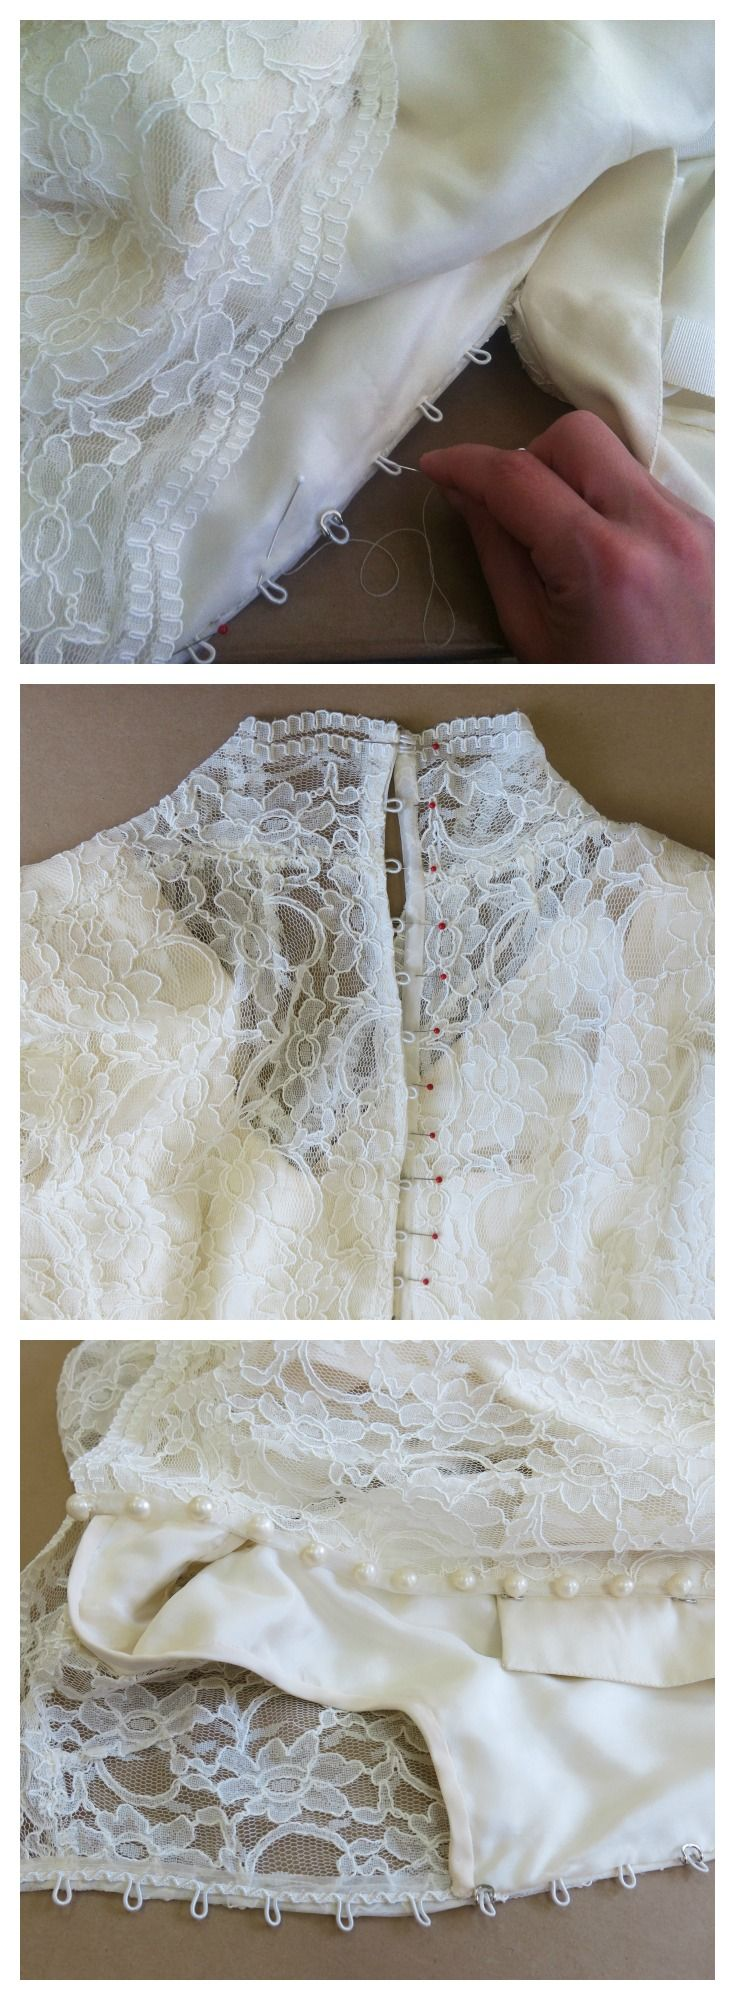 Sewing the bridal buttons (and other couture finishing details) to Caitlin's custom wedding dress / vma.